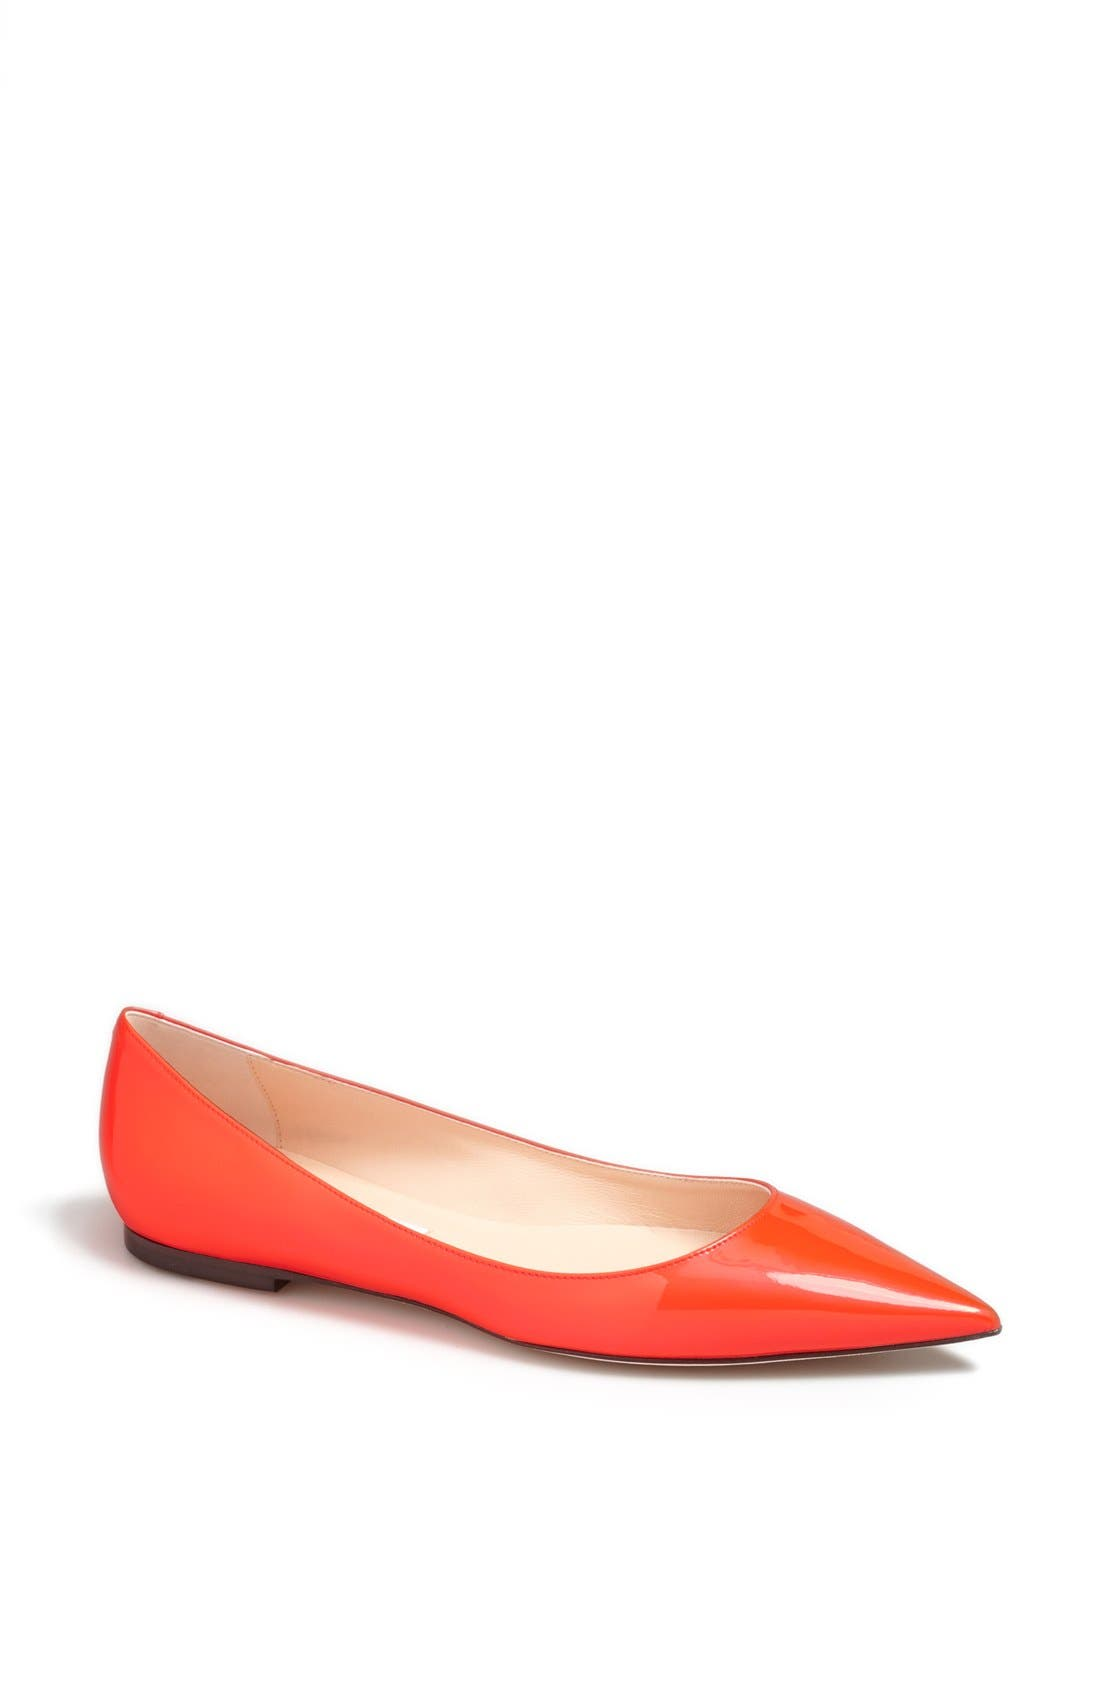 Alternate Image 1 Selected - Jimmy Choo 'Alina' Pointy Toe Flat